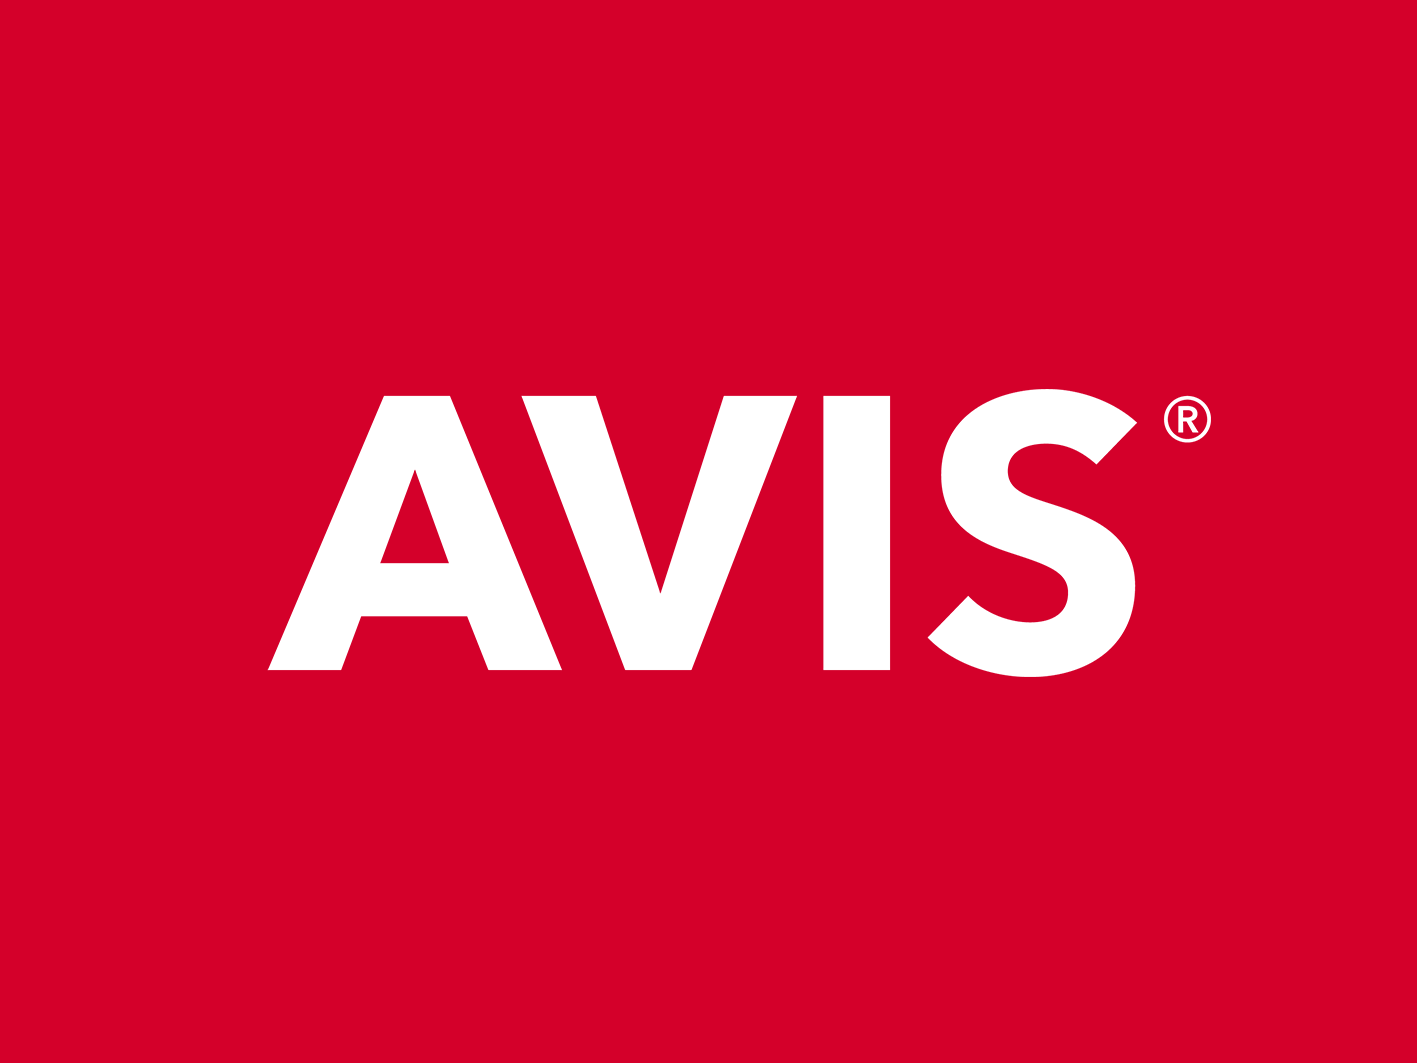 Hire a car for a holiday or business trip and make savings when you book online thanks to our Avis discount code and cashback deals. They offer car hire options in 5, locations across countries, including UK, European and worldwide destinations.. Visit the Avis website to search their extensive range of vehicles and latest offers, get a quote and make a booking, while you will also be.